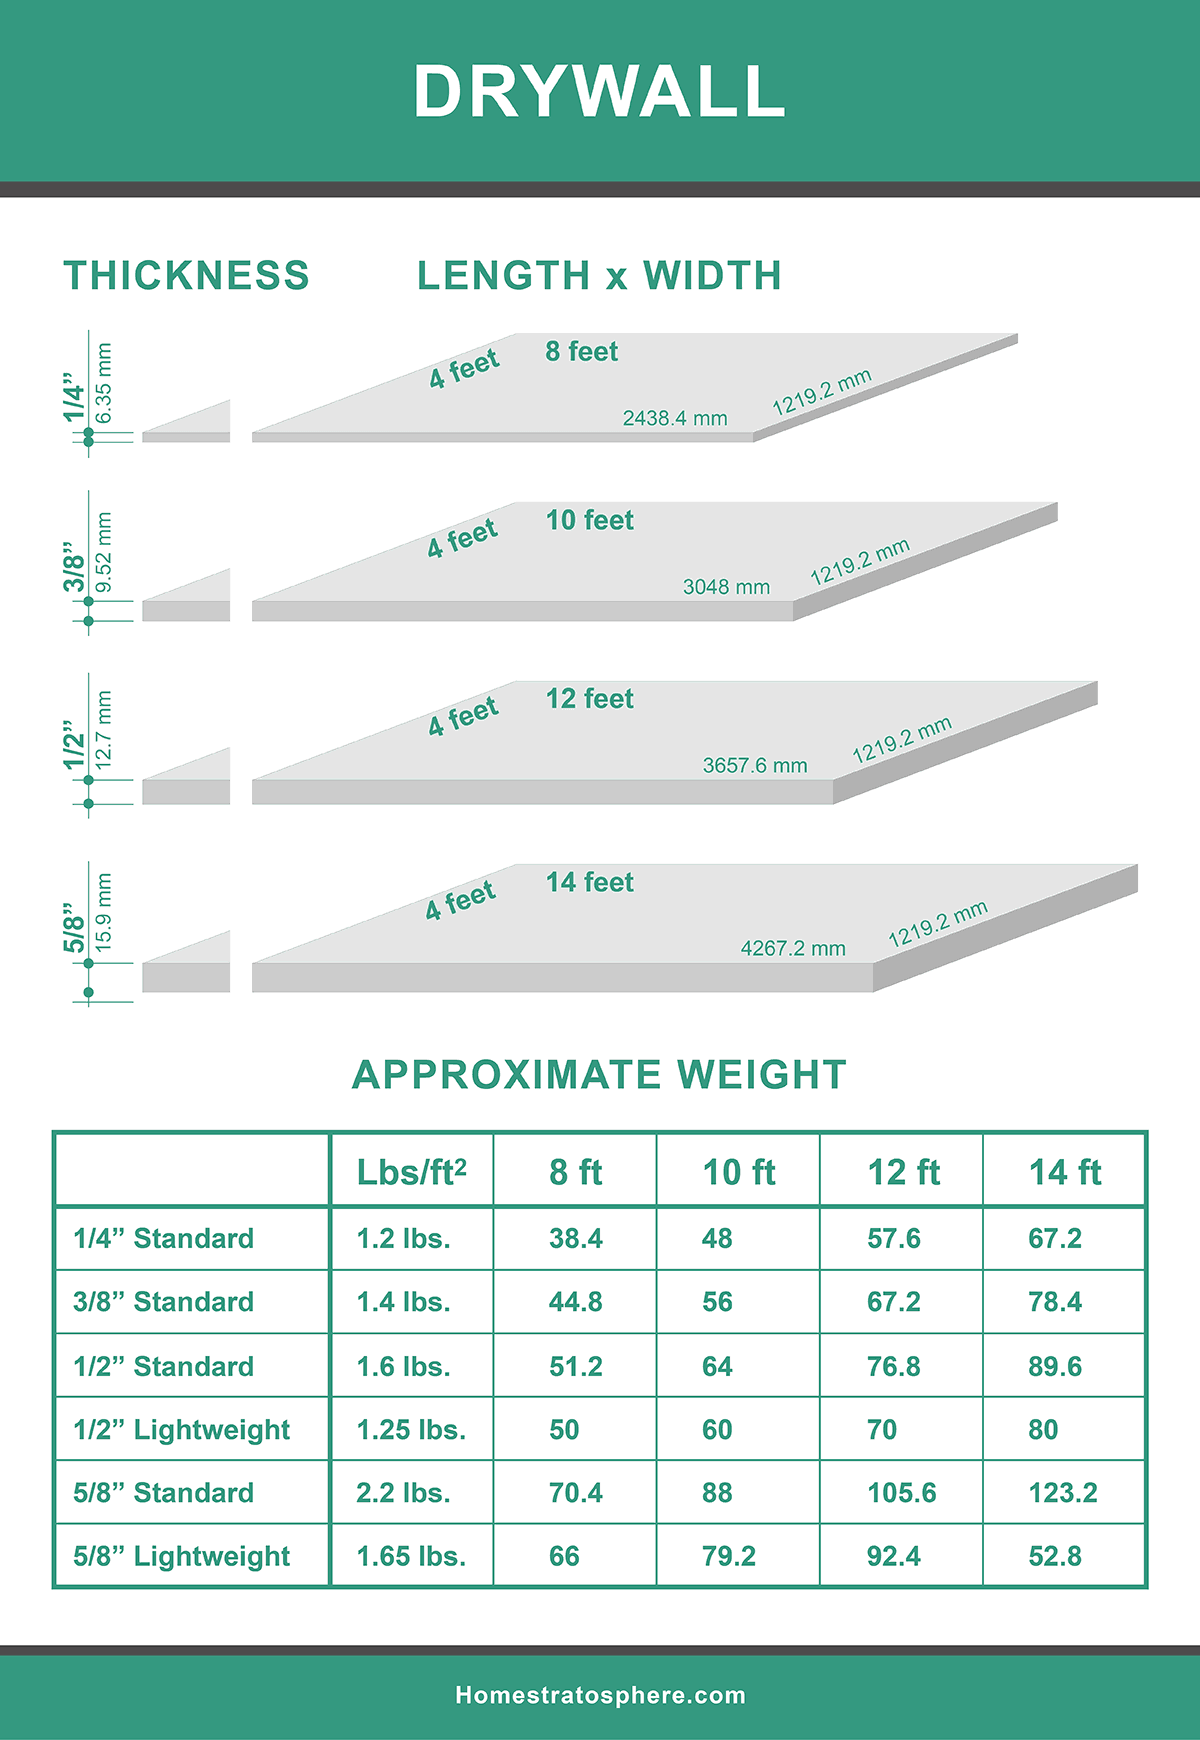 Drywall sizes and dimensions and thickness chart